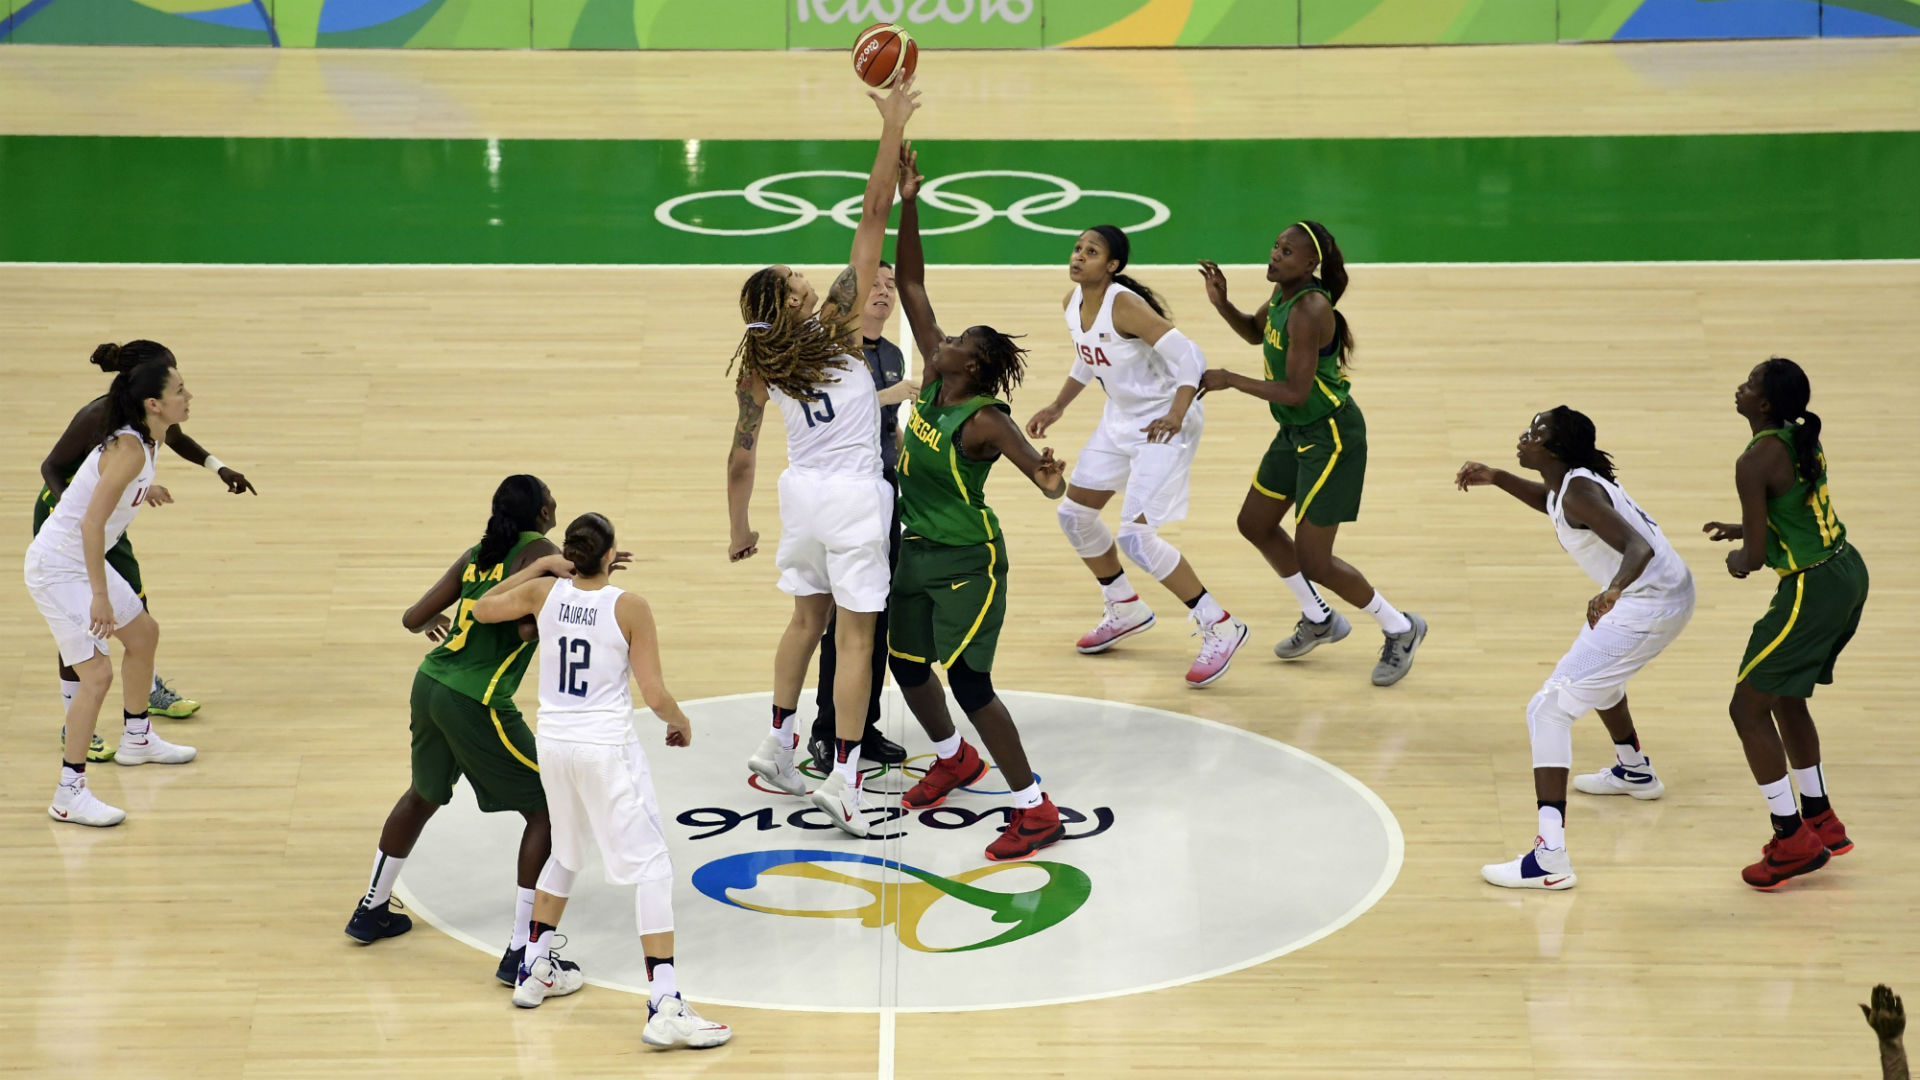 Rio Olympics 2016: Team USA Routs Senegal 121-56 To Open Olympics